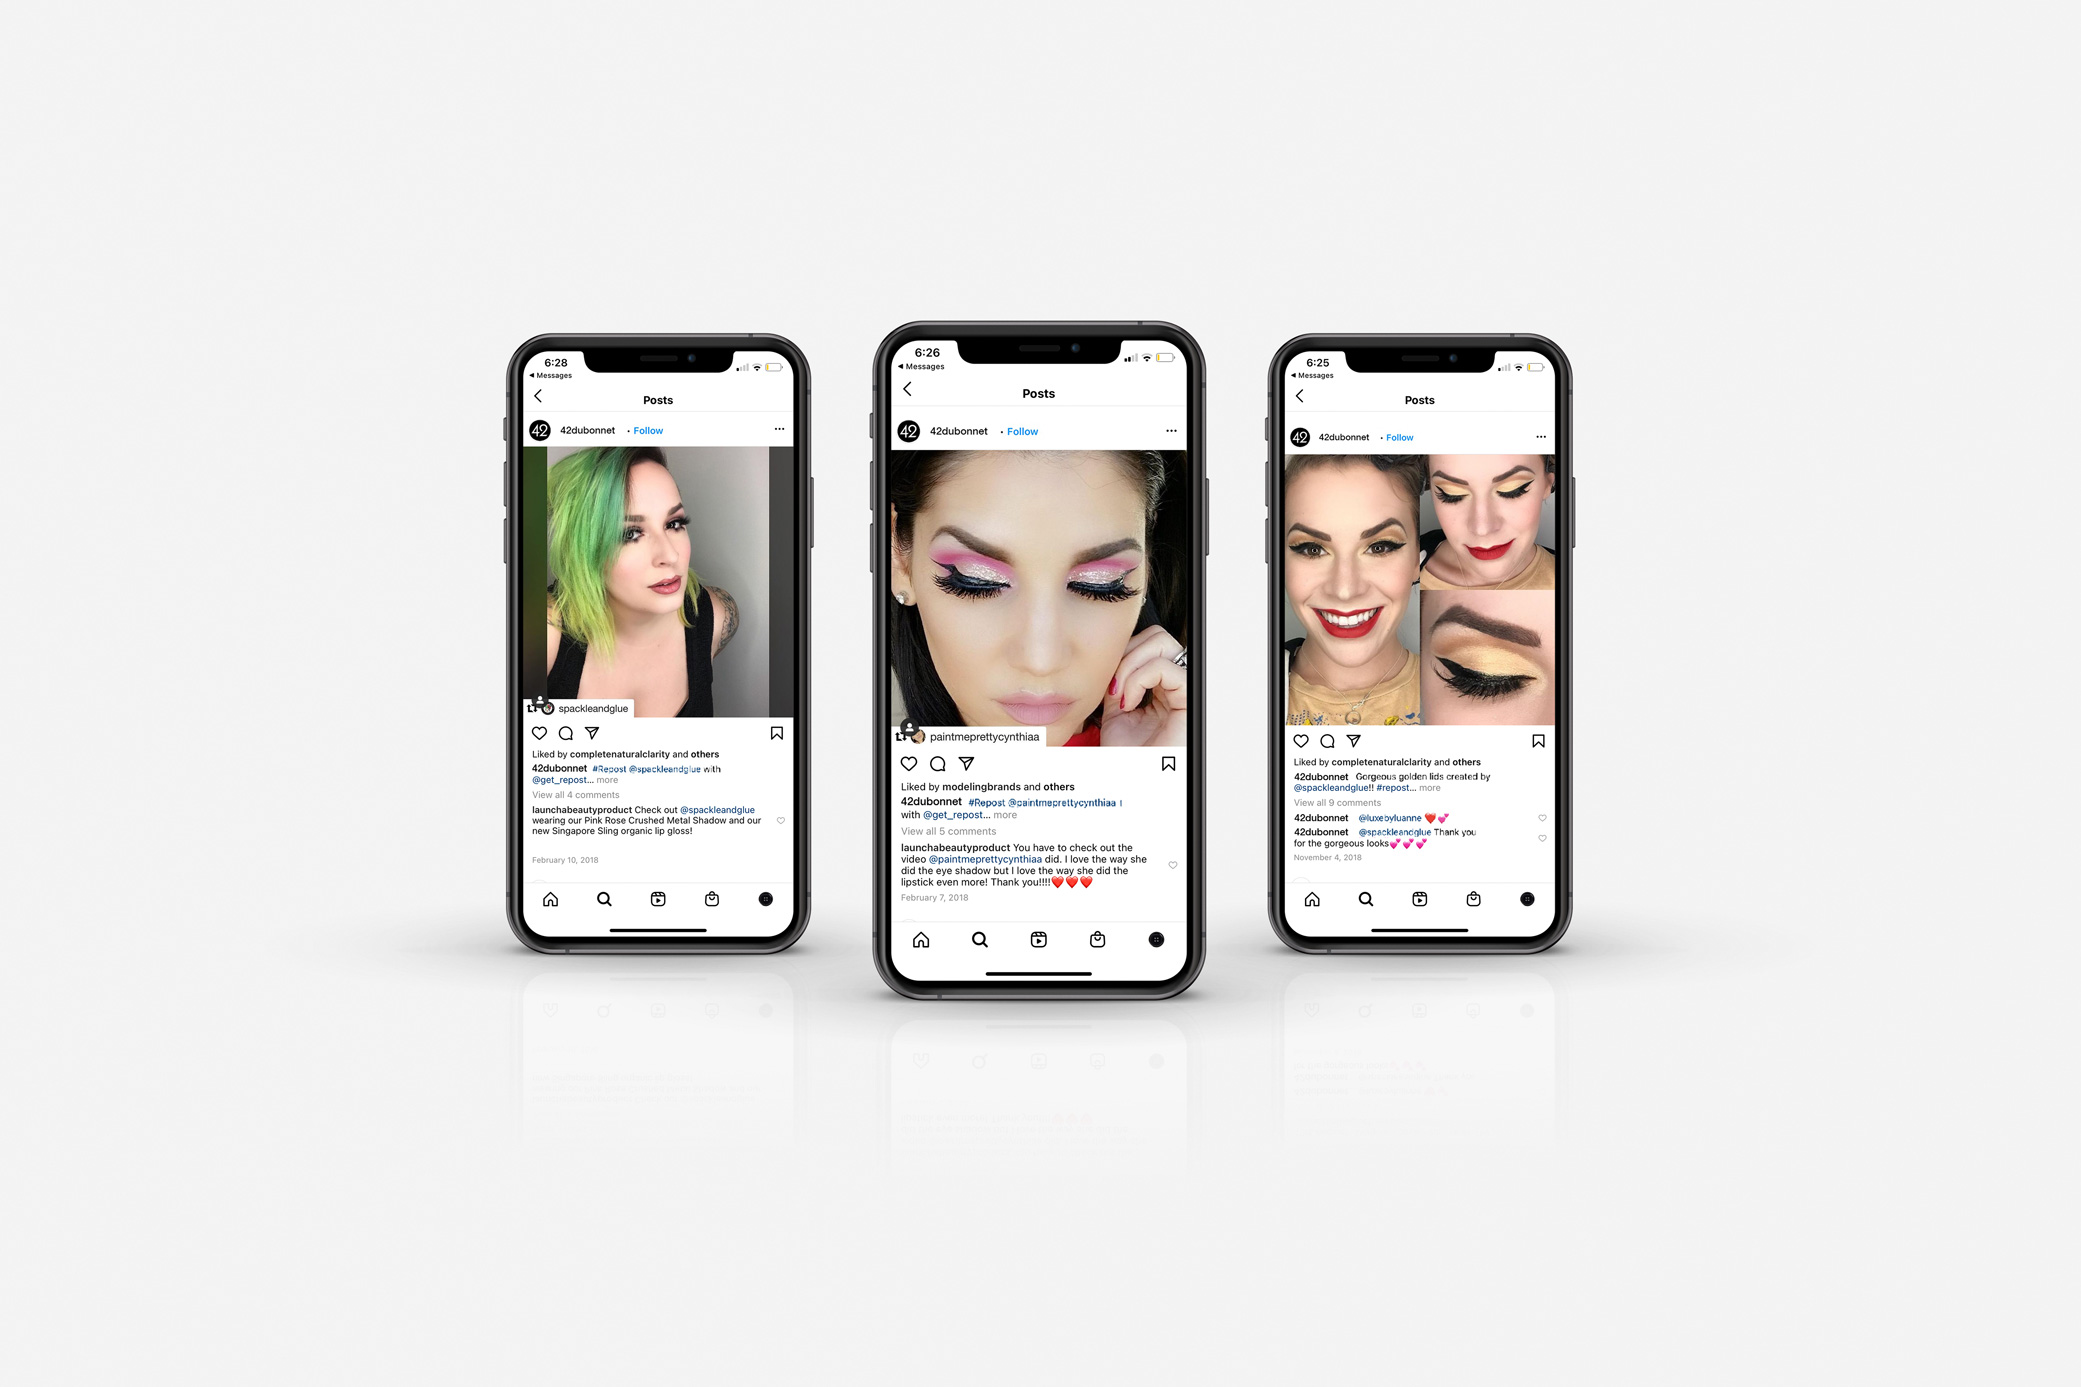 42 Dubonnet social media influencer images shown on iPhones displayed in a row against grey backdrop.